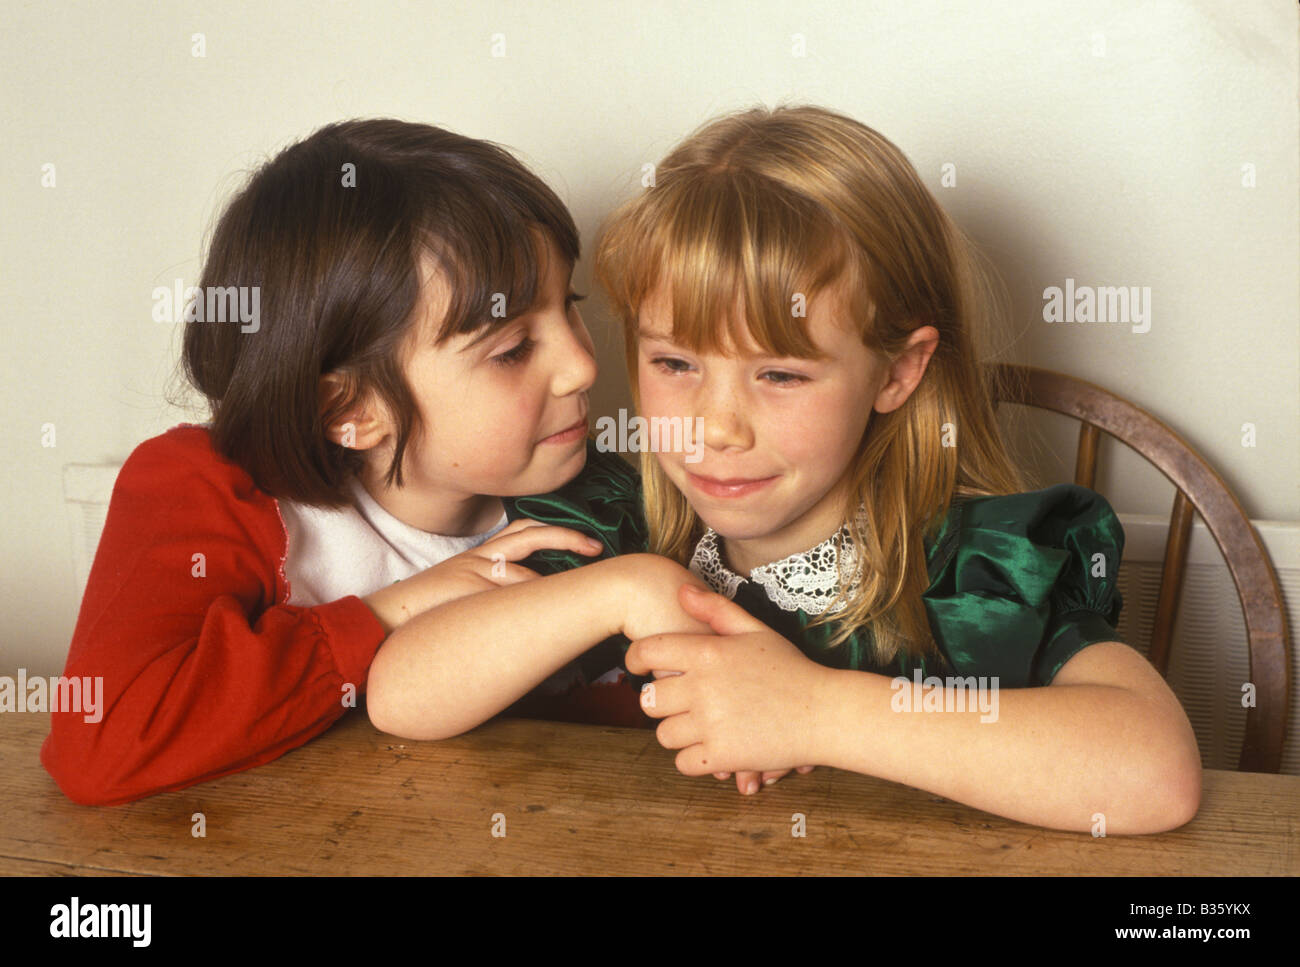 children whispering to each other - Stock Image